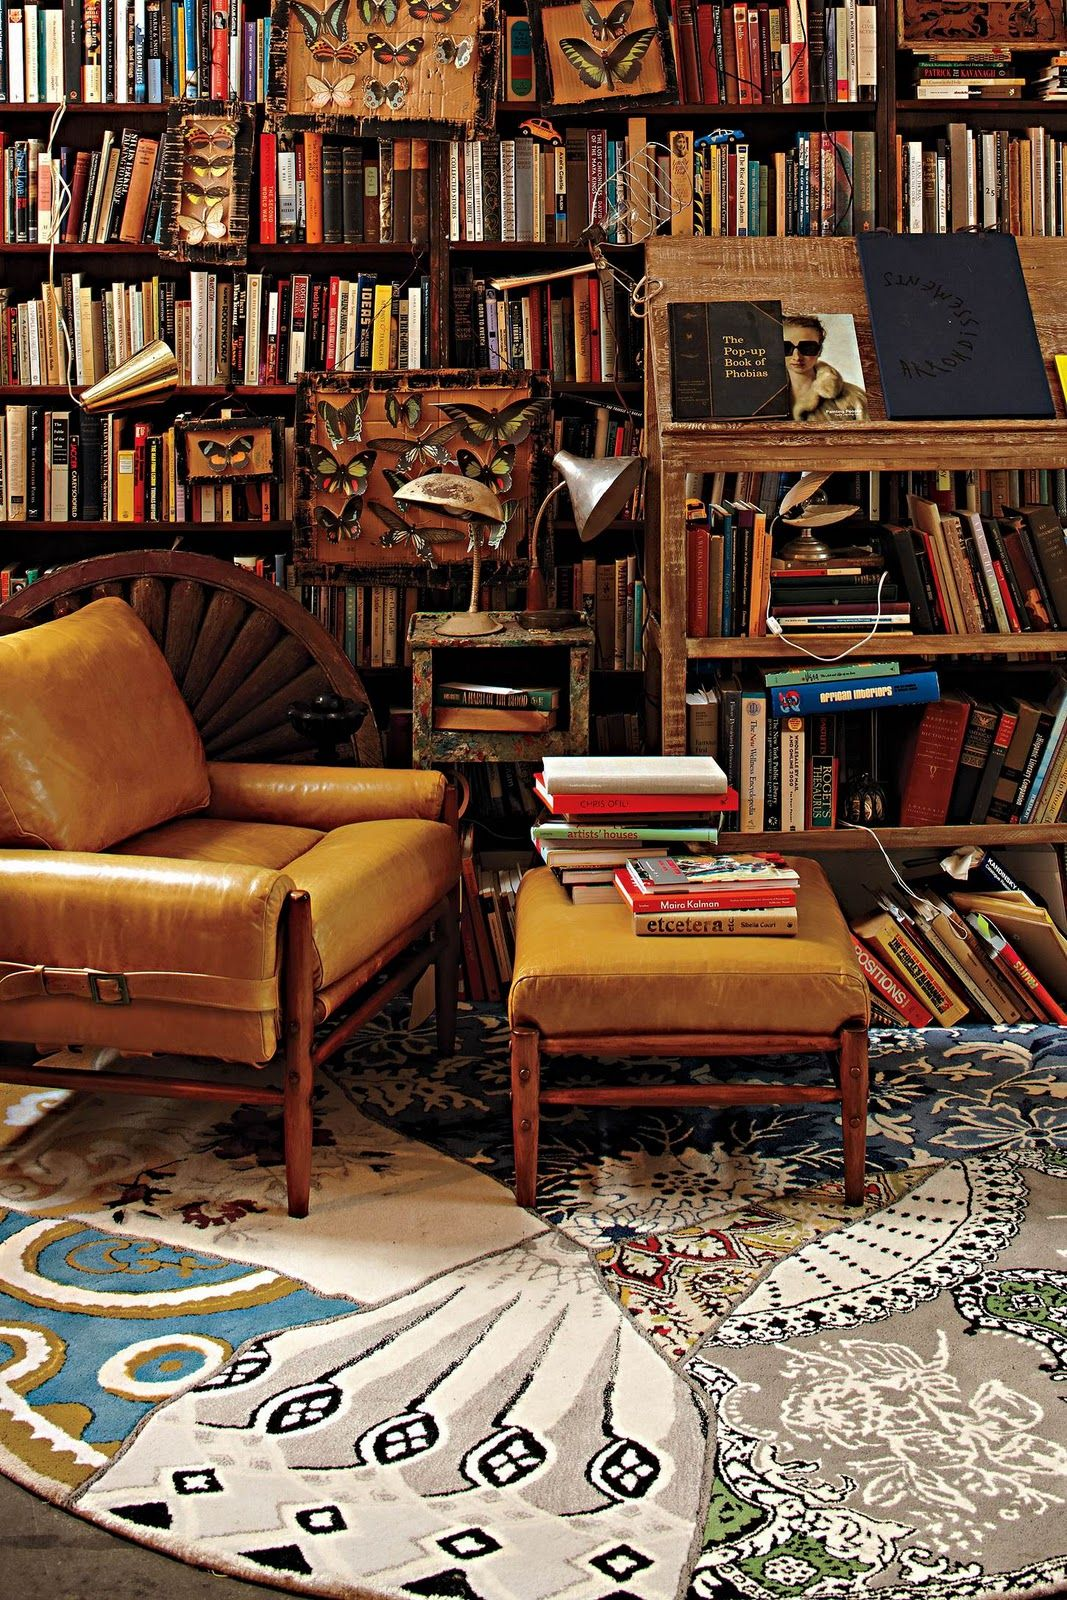 Lush Bohemian Library! Love The Vintage Tan Leather Arm Chair, Boho Rug And  Masses